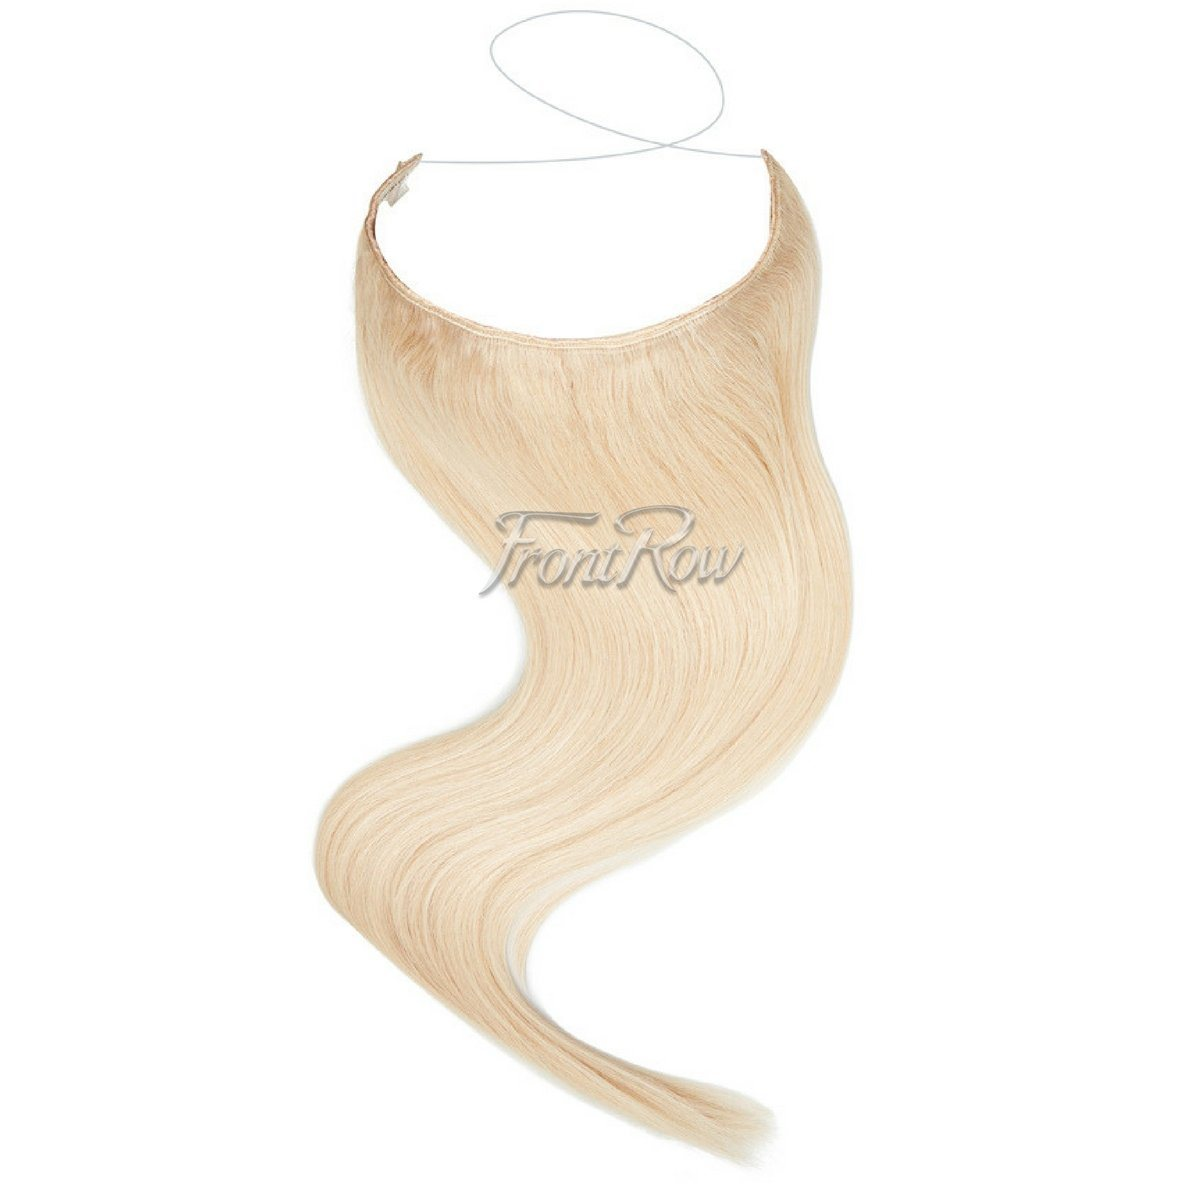 Halo hair extensions in south africa frontrow frontrowza ice ice lady 18inch platinum blonde halo hair extensions baditri Image collections